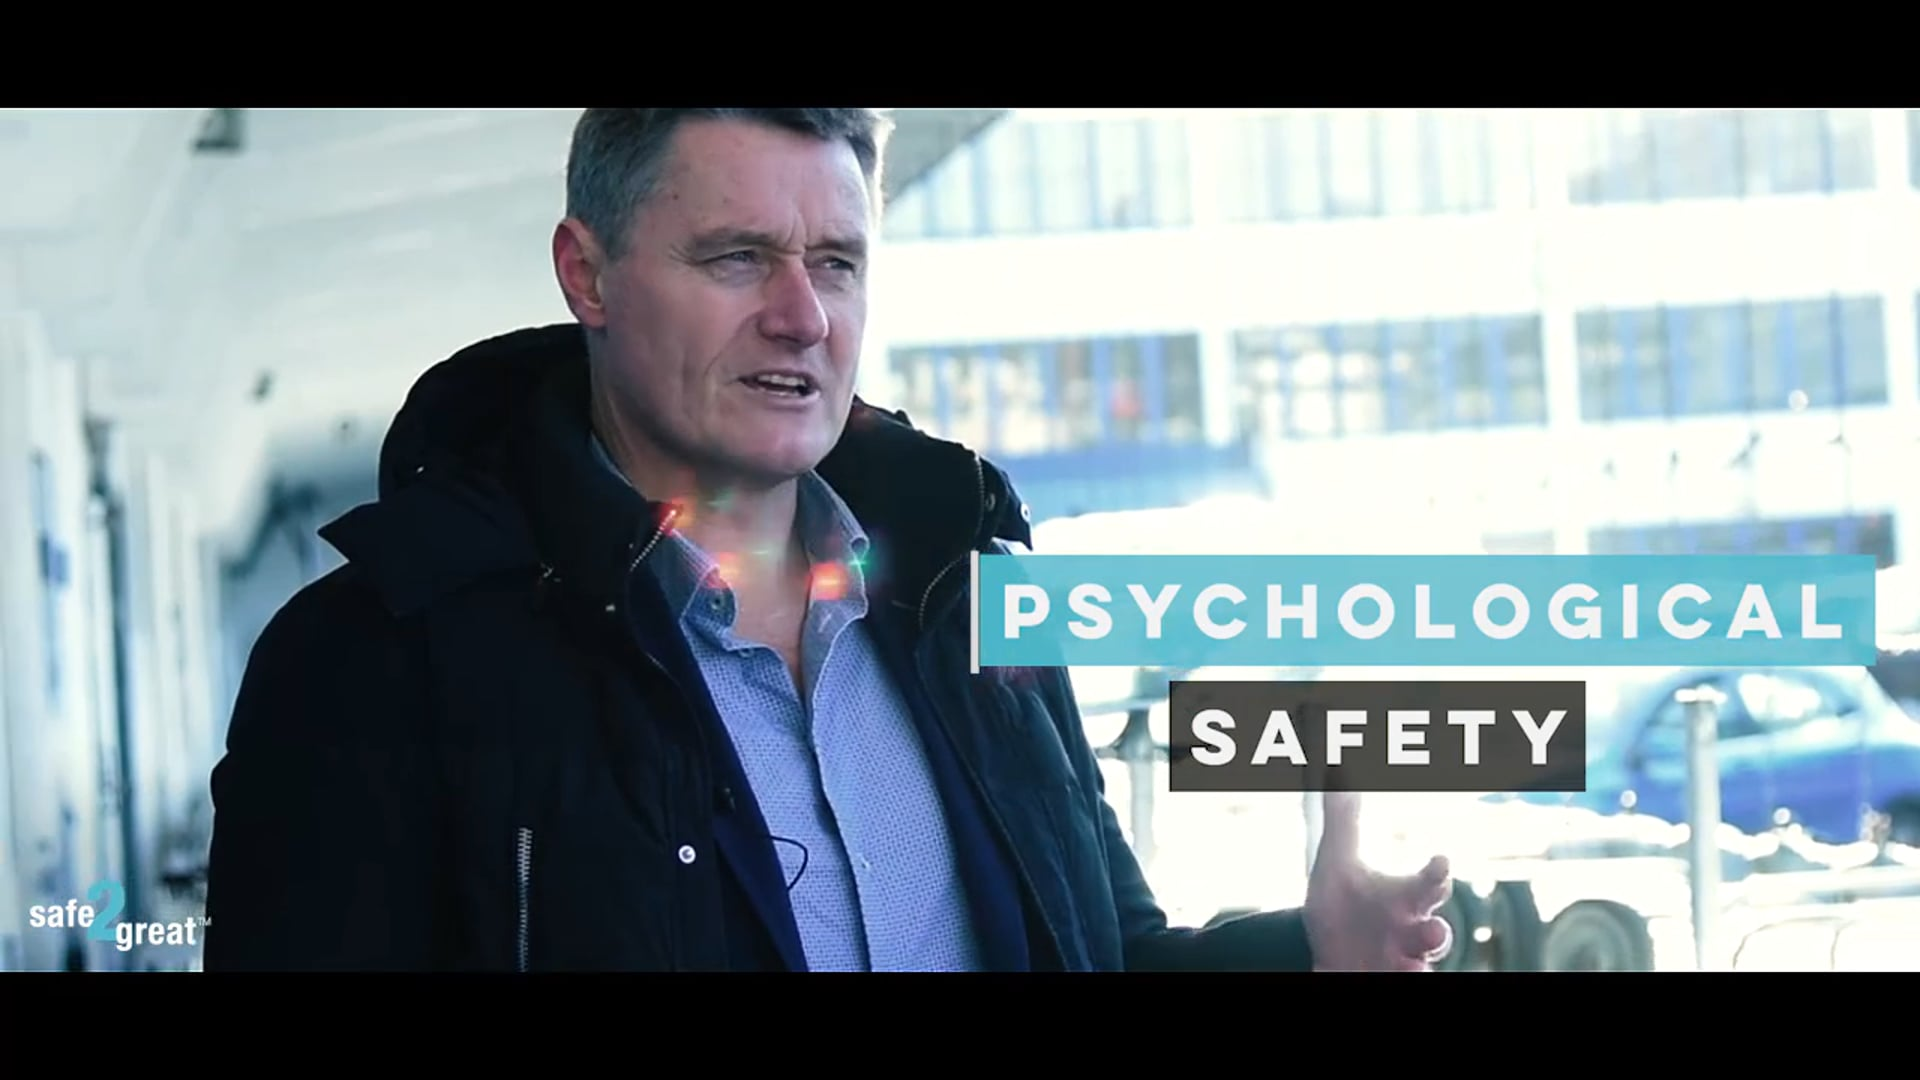 Psychological Safety and high performing teams.